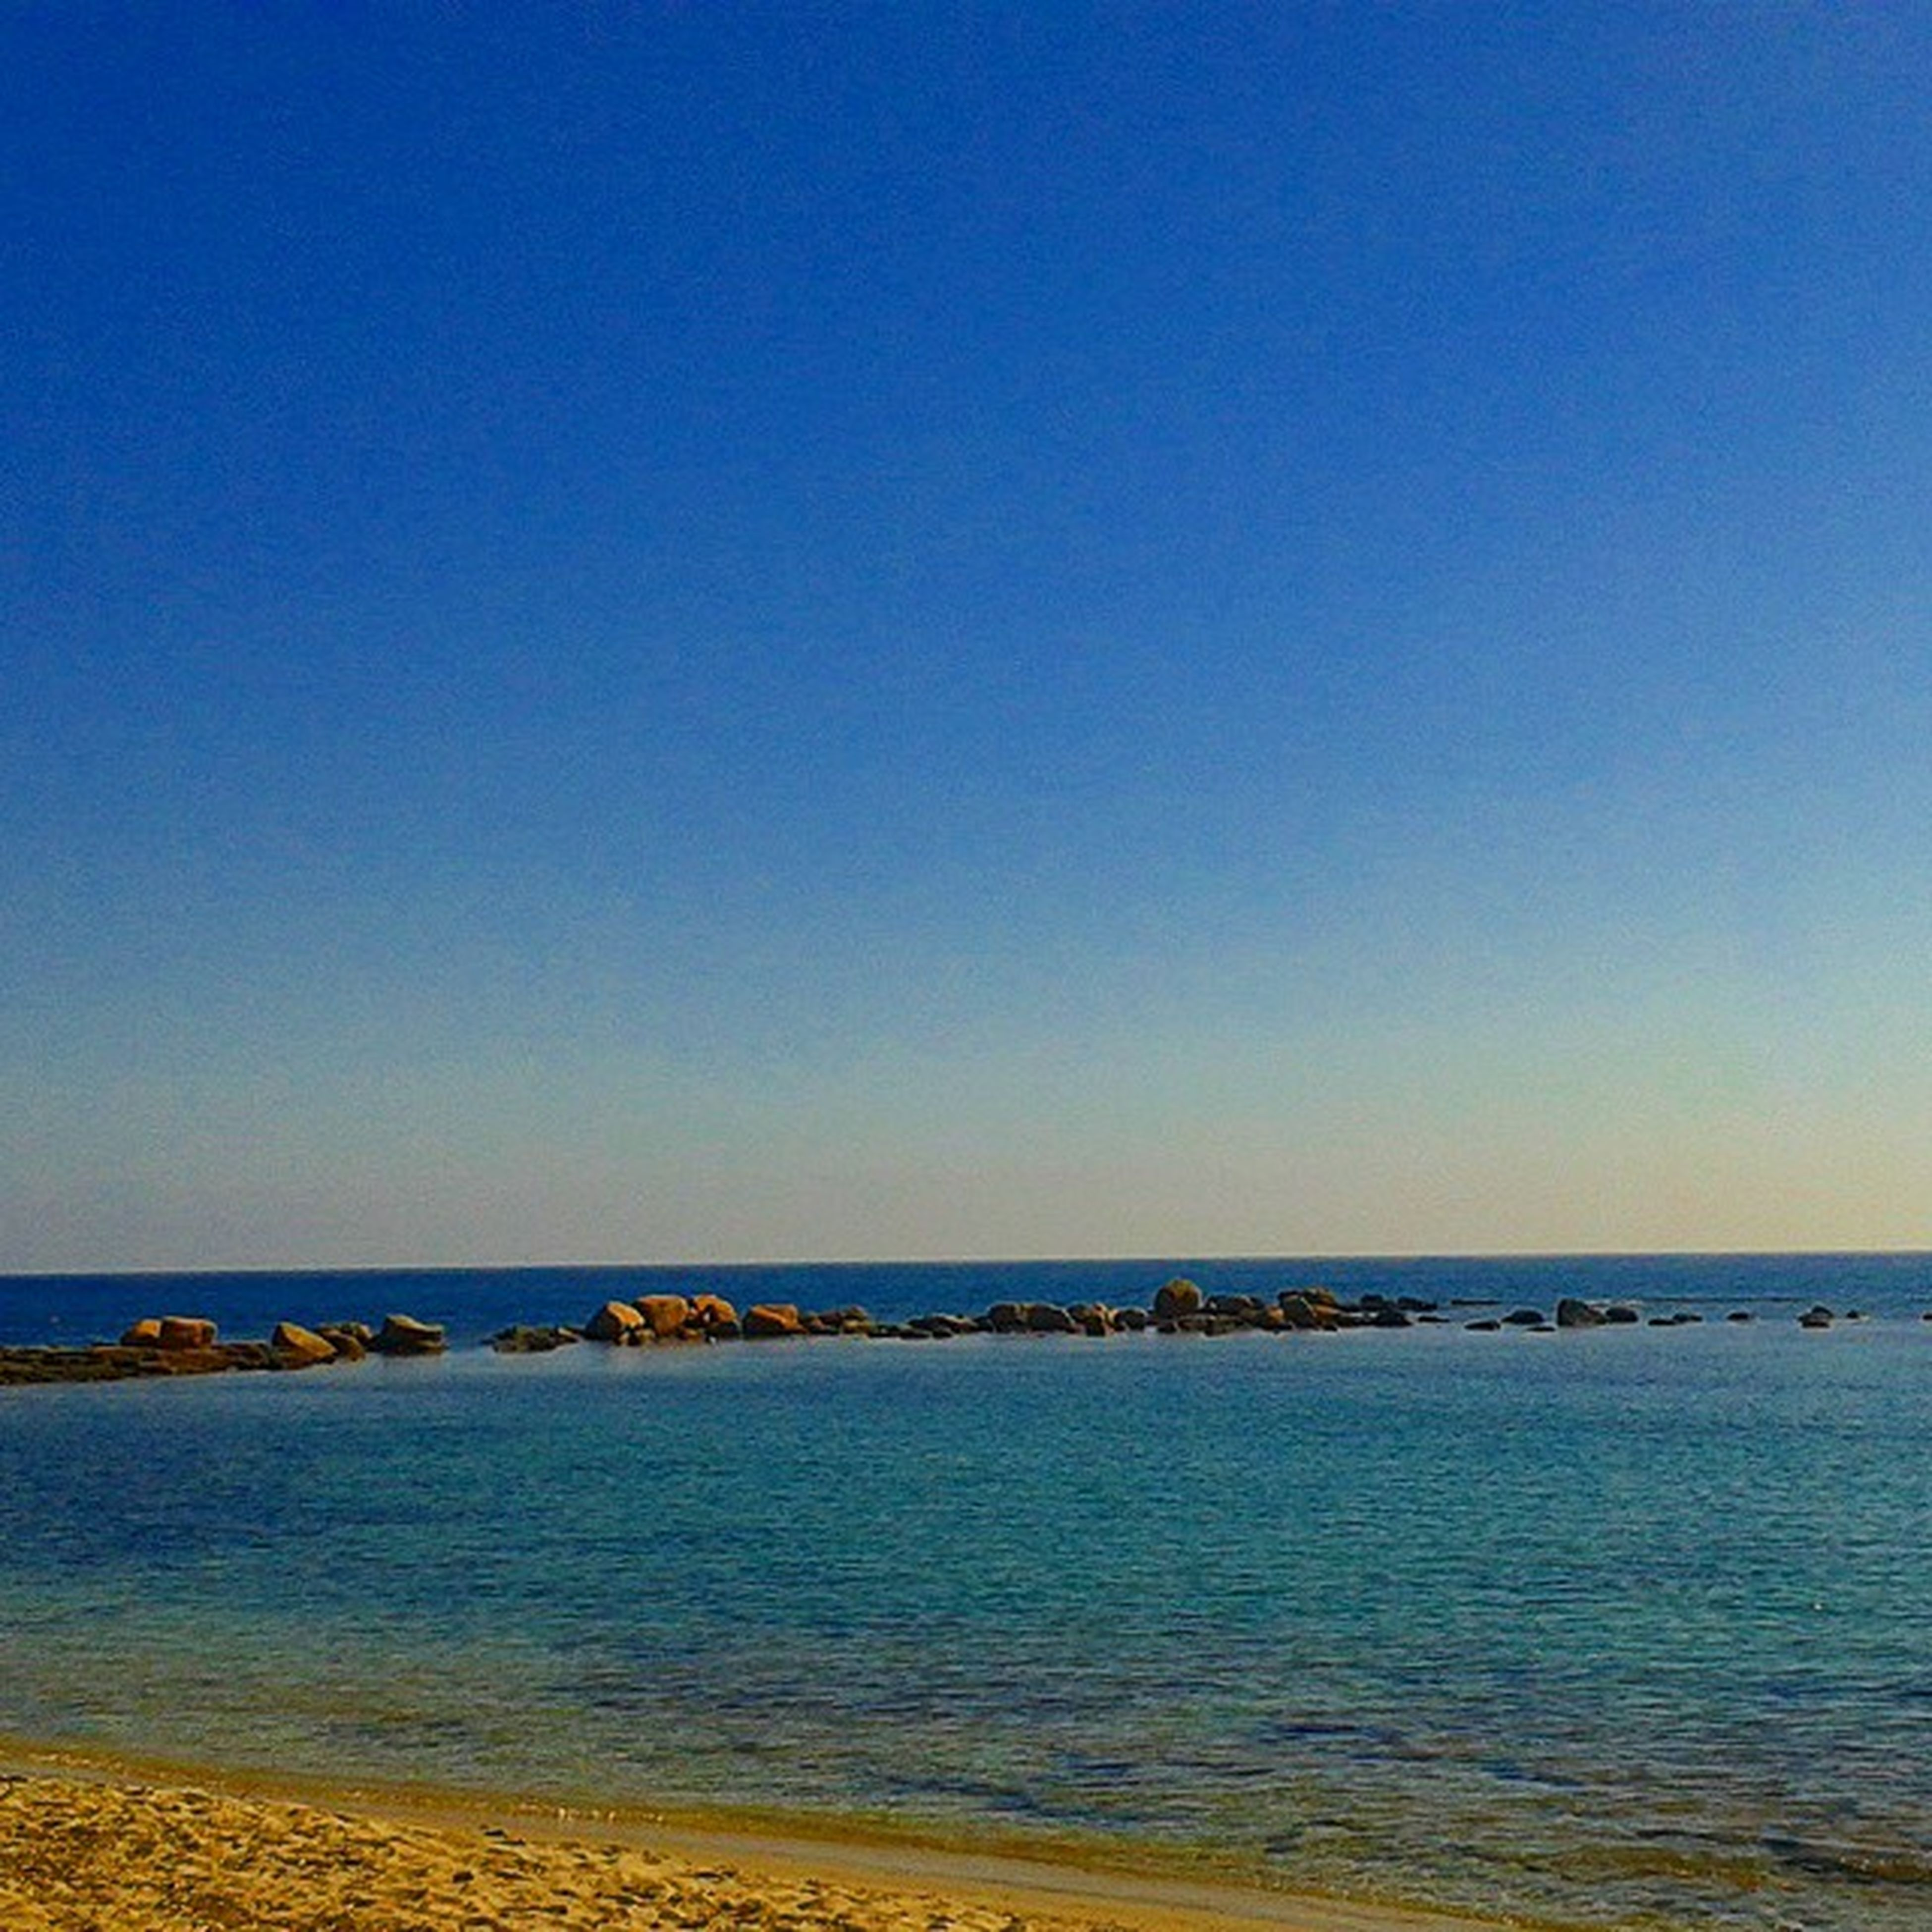 clear sky, sea, copy space, water, blue, horizon over water, tranquil scene, tranquility, beach, scenics, beauty in nature, nature, shore, idyllic, sand, calm, remote, coastline, outdoors, seascape